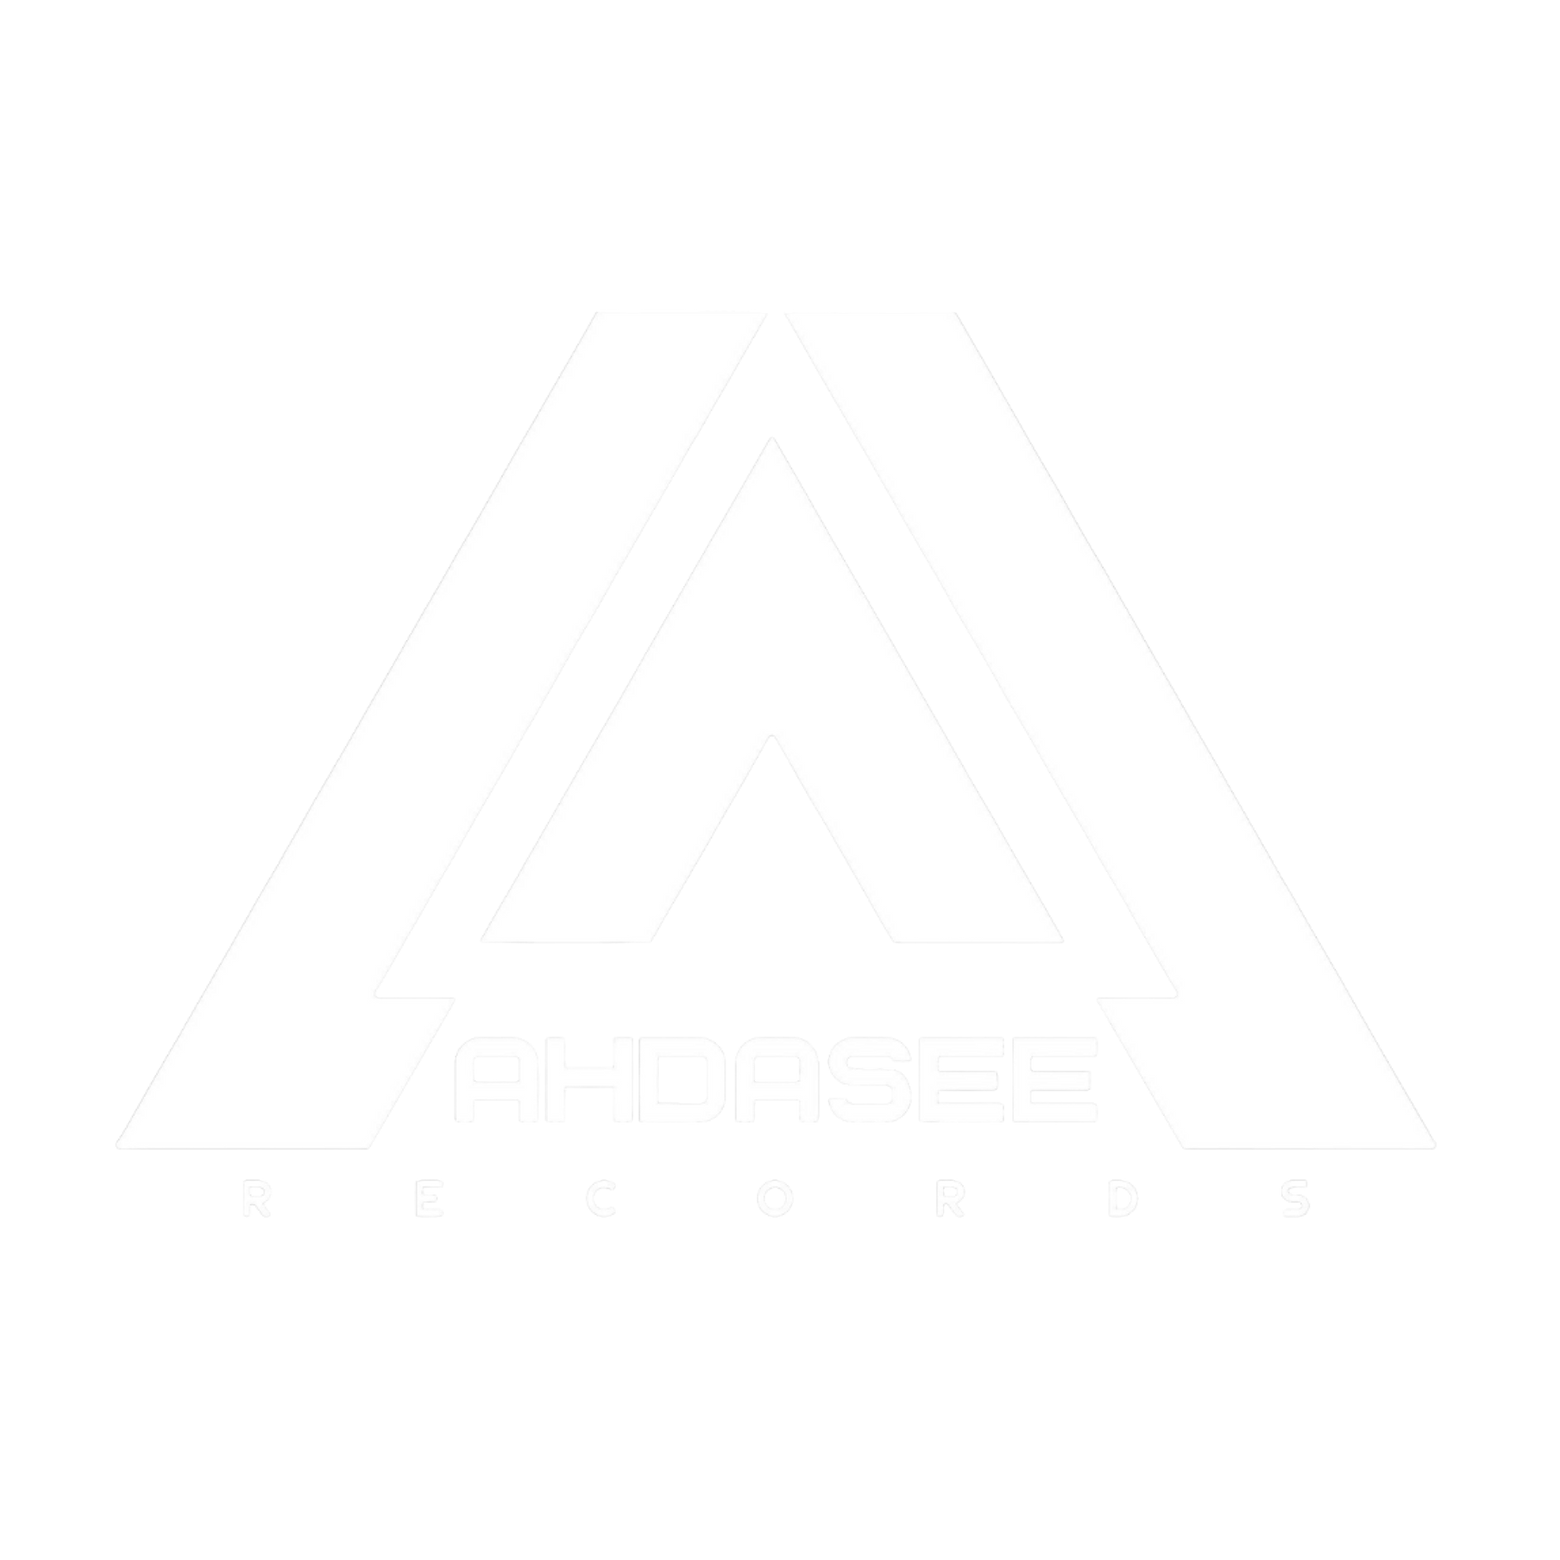 Ahdasee Records